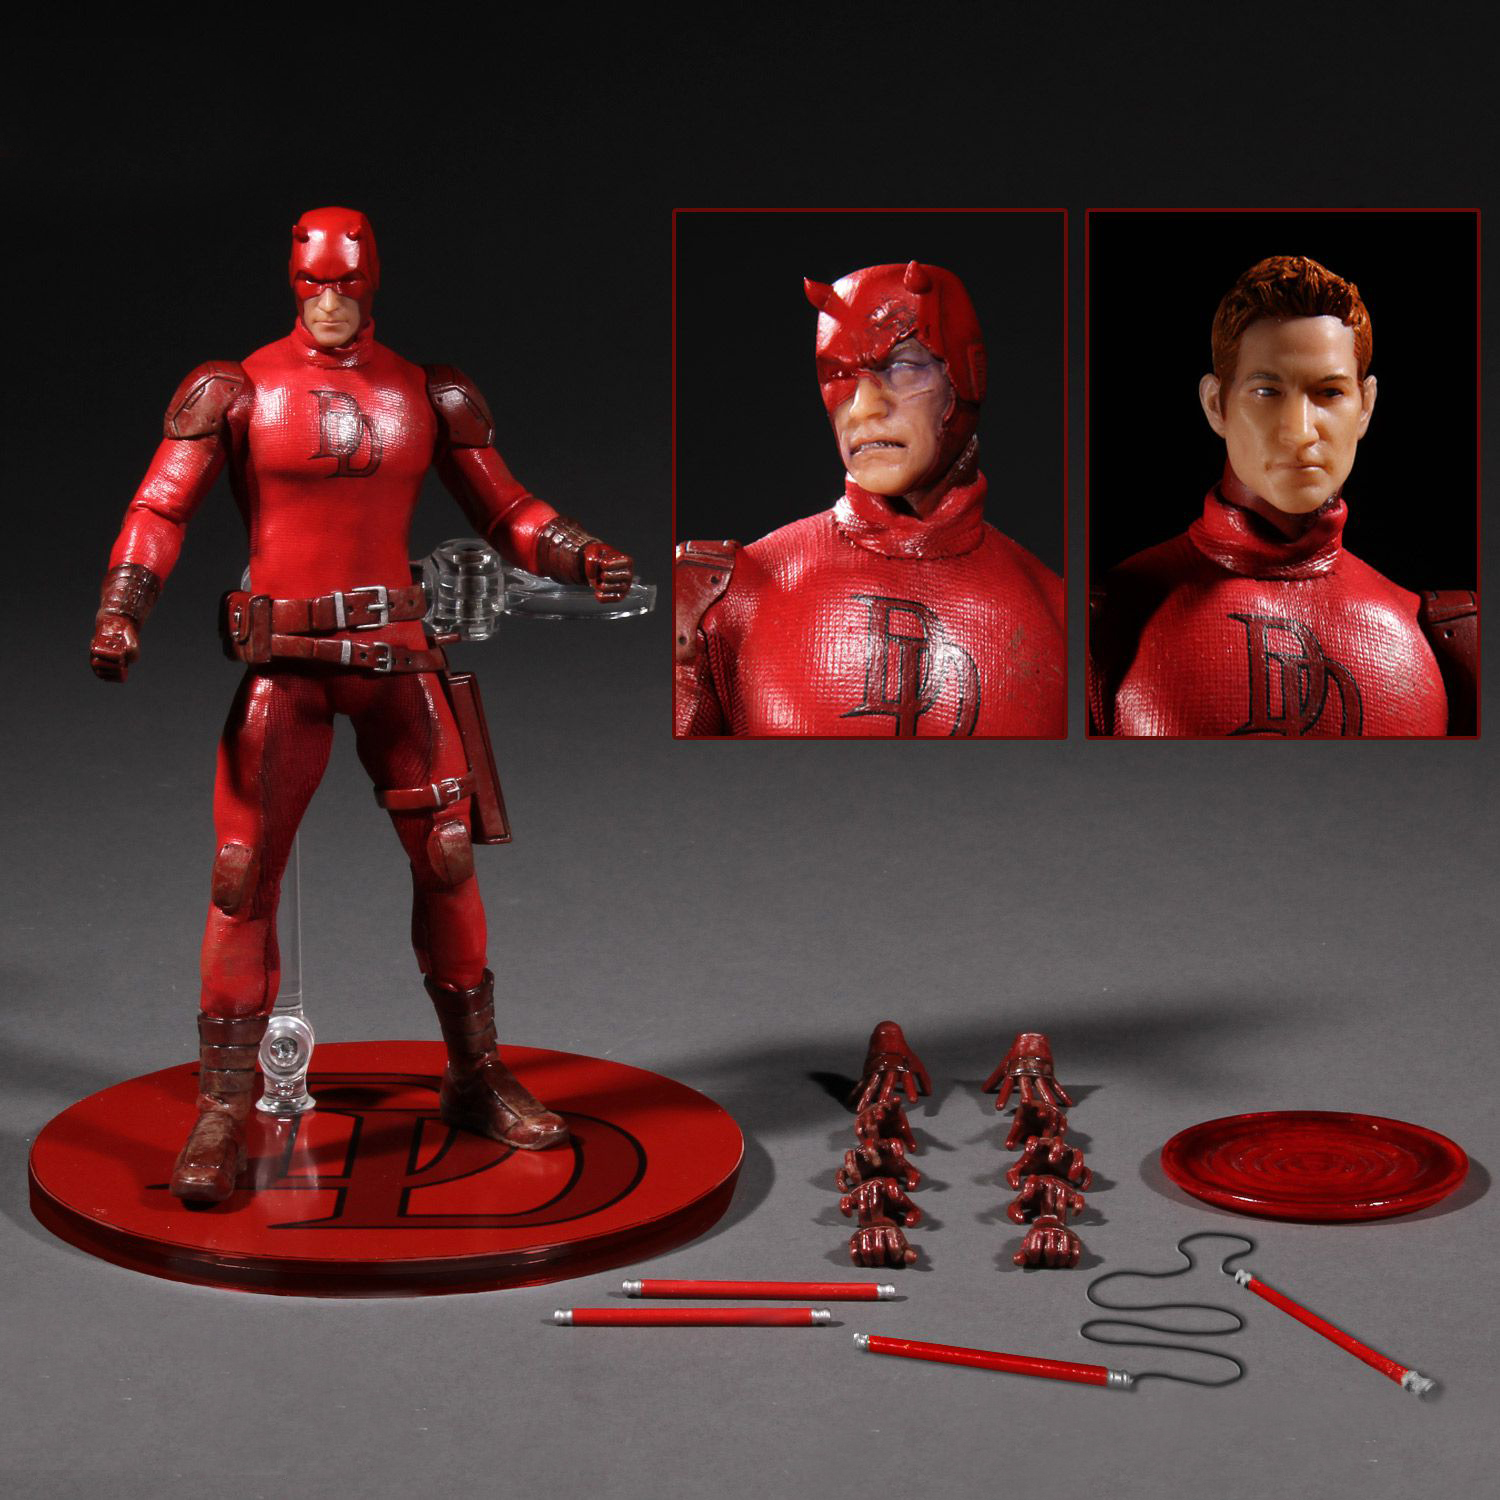 Marvel Super Hero Daredevil 1:12 Action Figure Toys